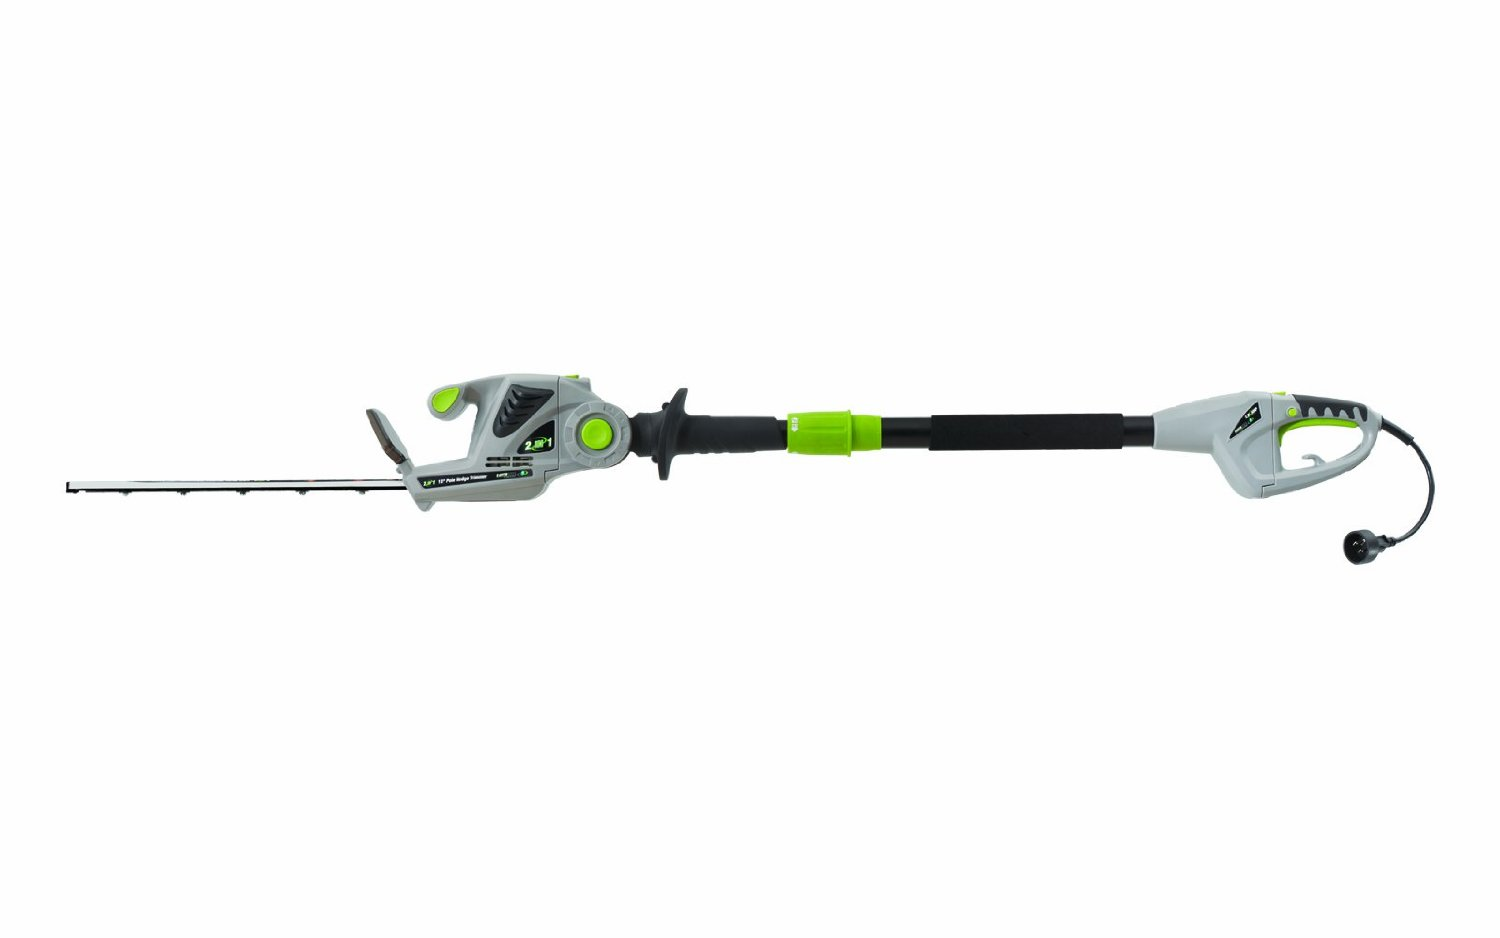 Cordless Hedge Trimmer Best For Garden Decor